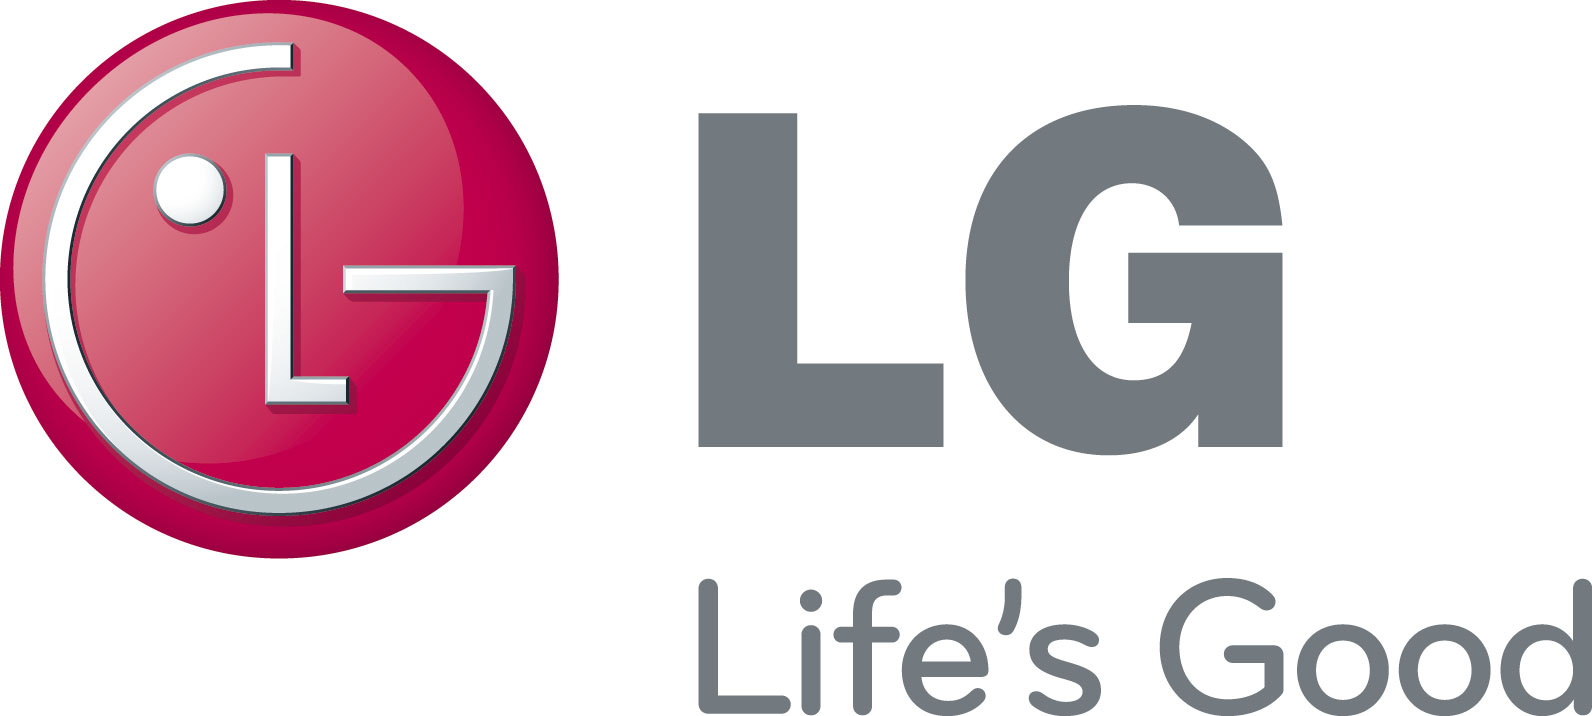 LG G4 Compact and Utra Rumors are Beginning to Heat Up